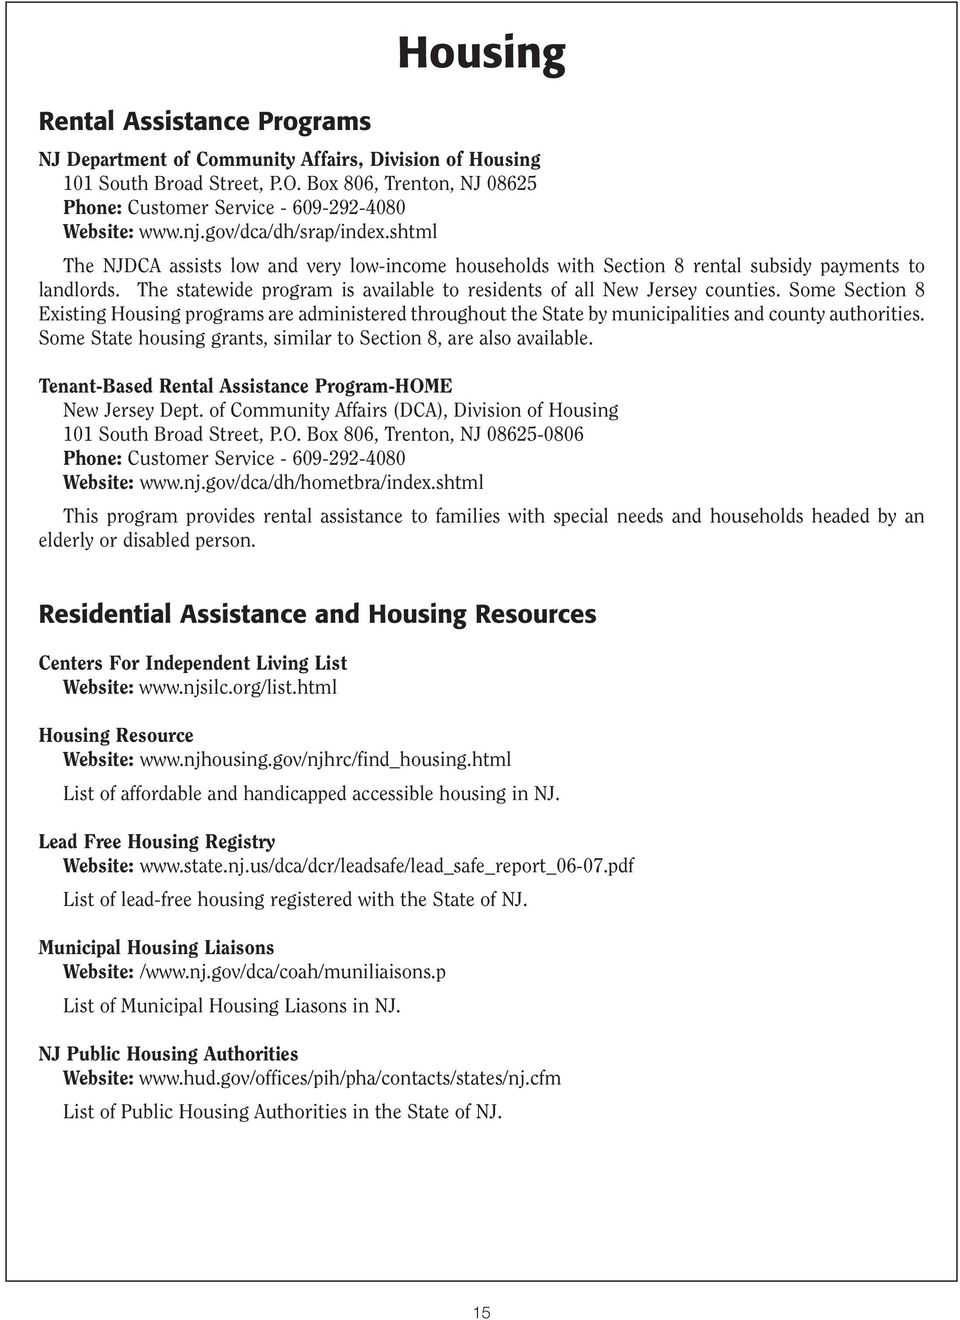 The statewide program is available to residents of all New Jersey counties. Some Section 8 Existing Housing programs are administered throughout the State by municipalities and county authorities.